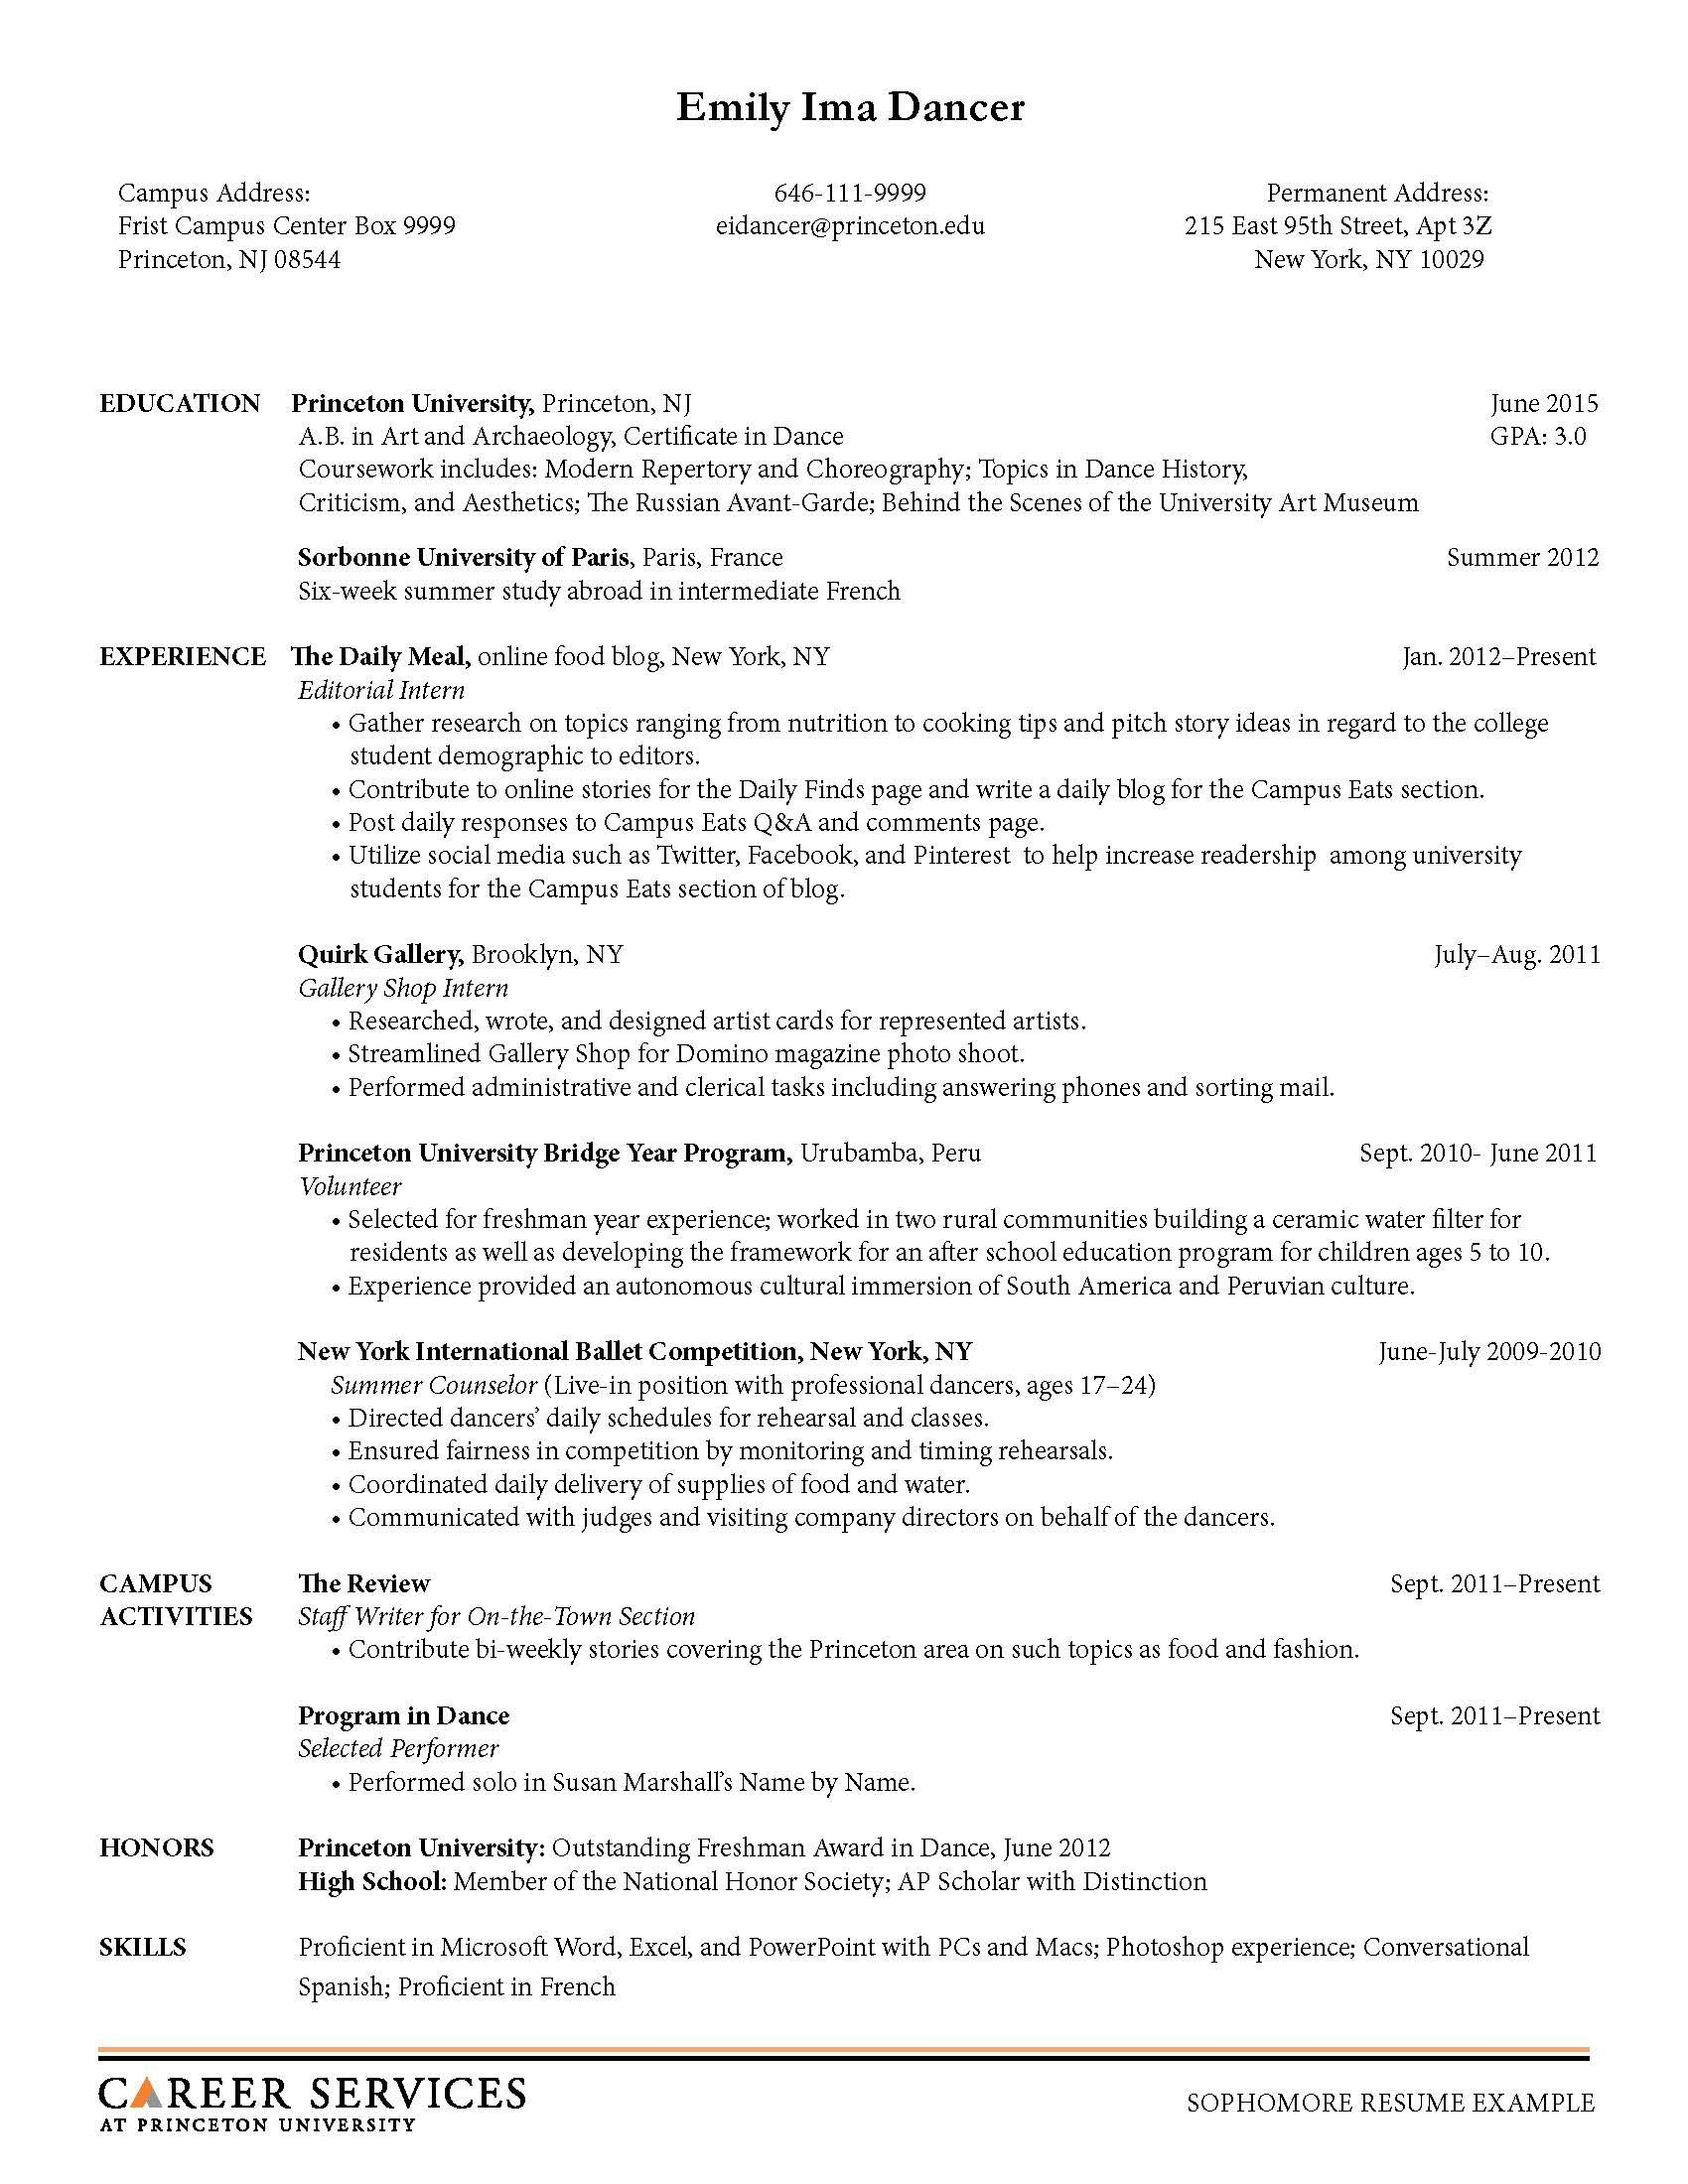 Opposenewapstandardsus  Marvellous Sample Resume Resume And Career On Pinterest With Glamorous Forklift Operator Resume Examples Besides Linkedin Resume Template Furthermore Physician Resume Template With Adorable Sample Marketing Resumes Also Job Resume Template Free In Addition Objective Statement For Nursing Resume And Free Resume Services As Well As Application Developer Resume Additionally Office Resume Examples From Pinterestcom With Opposenewapstandardsus  Glamorous Sample Resume Resume And Career On Pinterest With Adorable Forklift Operator Resume Examples Besides Linkedin Resume Template Furthermore Physician Resume Template And Marvellous Sample Marketing Resumes Also Job Resume Template Free In Addition Objective Statement For Nursing Resume From Pinterestcom